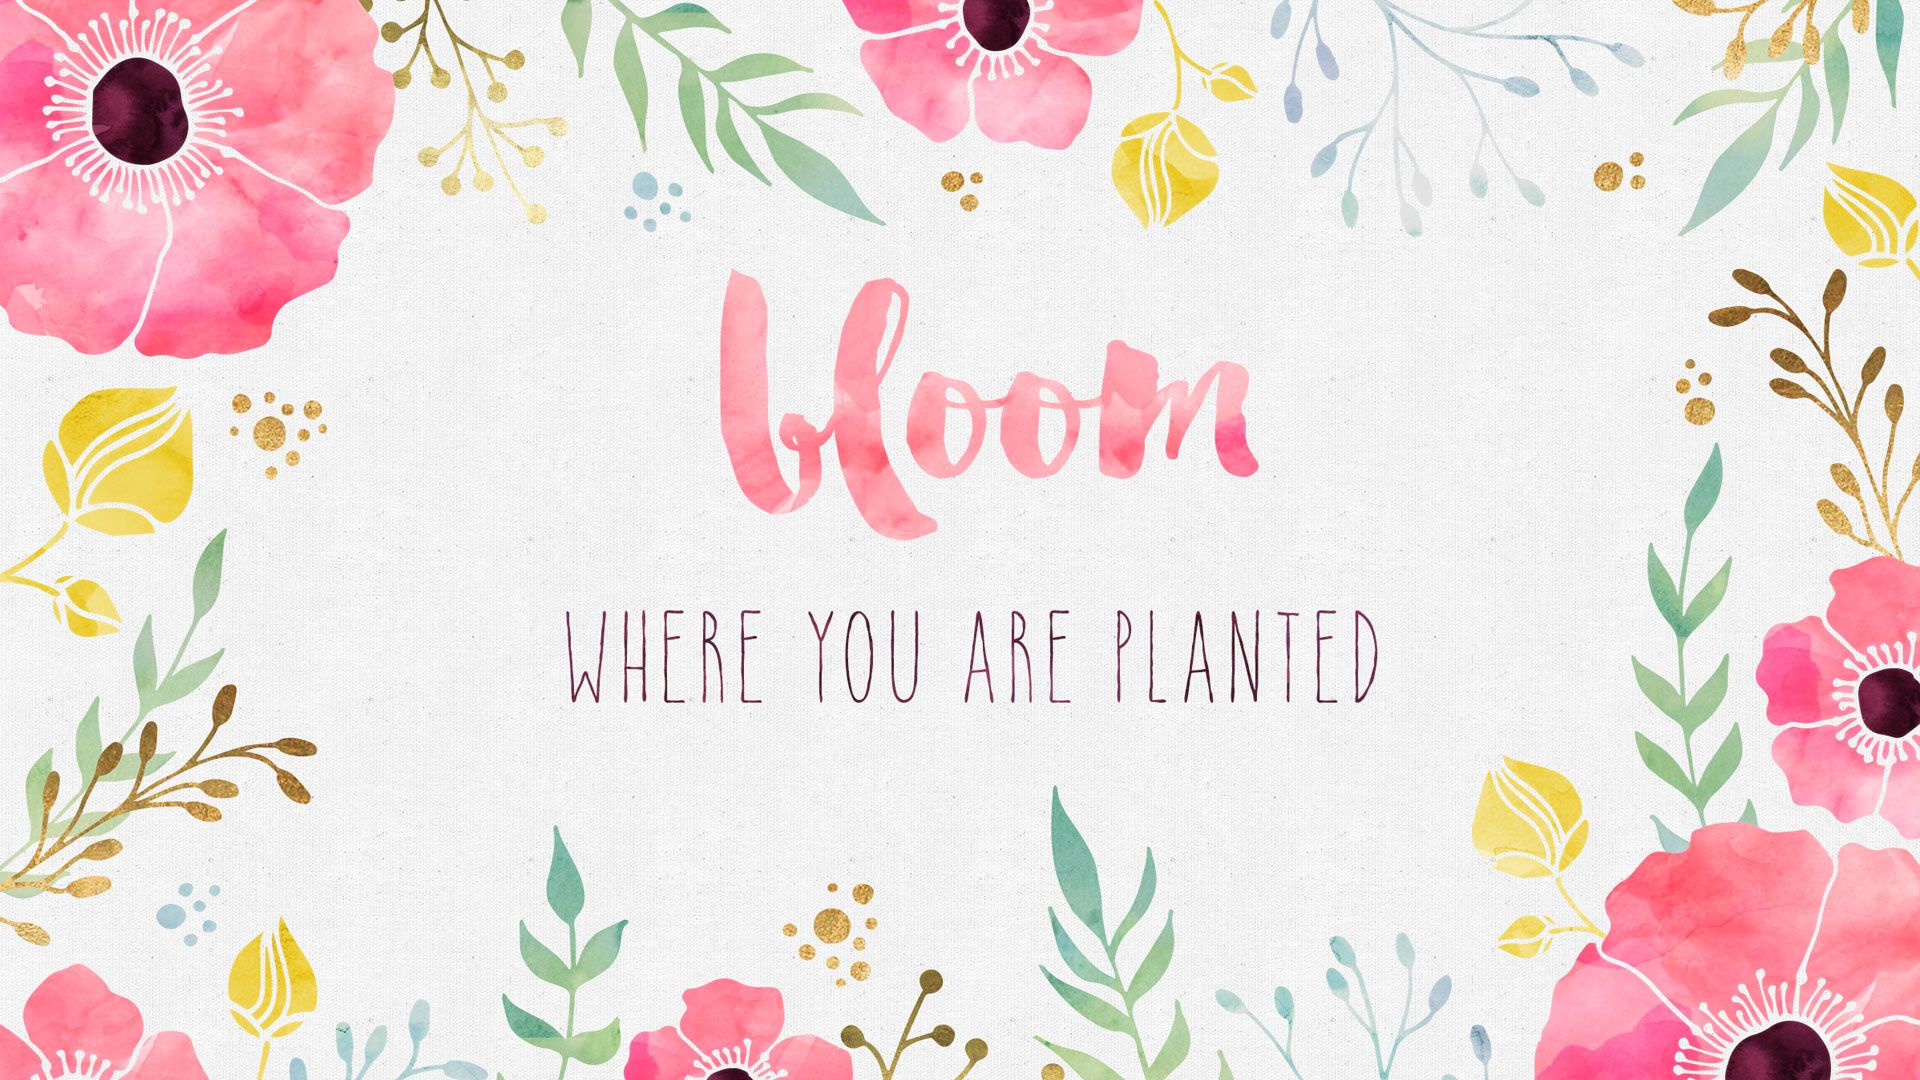 Desktop Wallpaper   Bloom Where you are Planted Cute 1920x1080